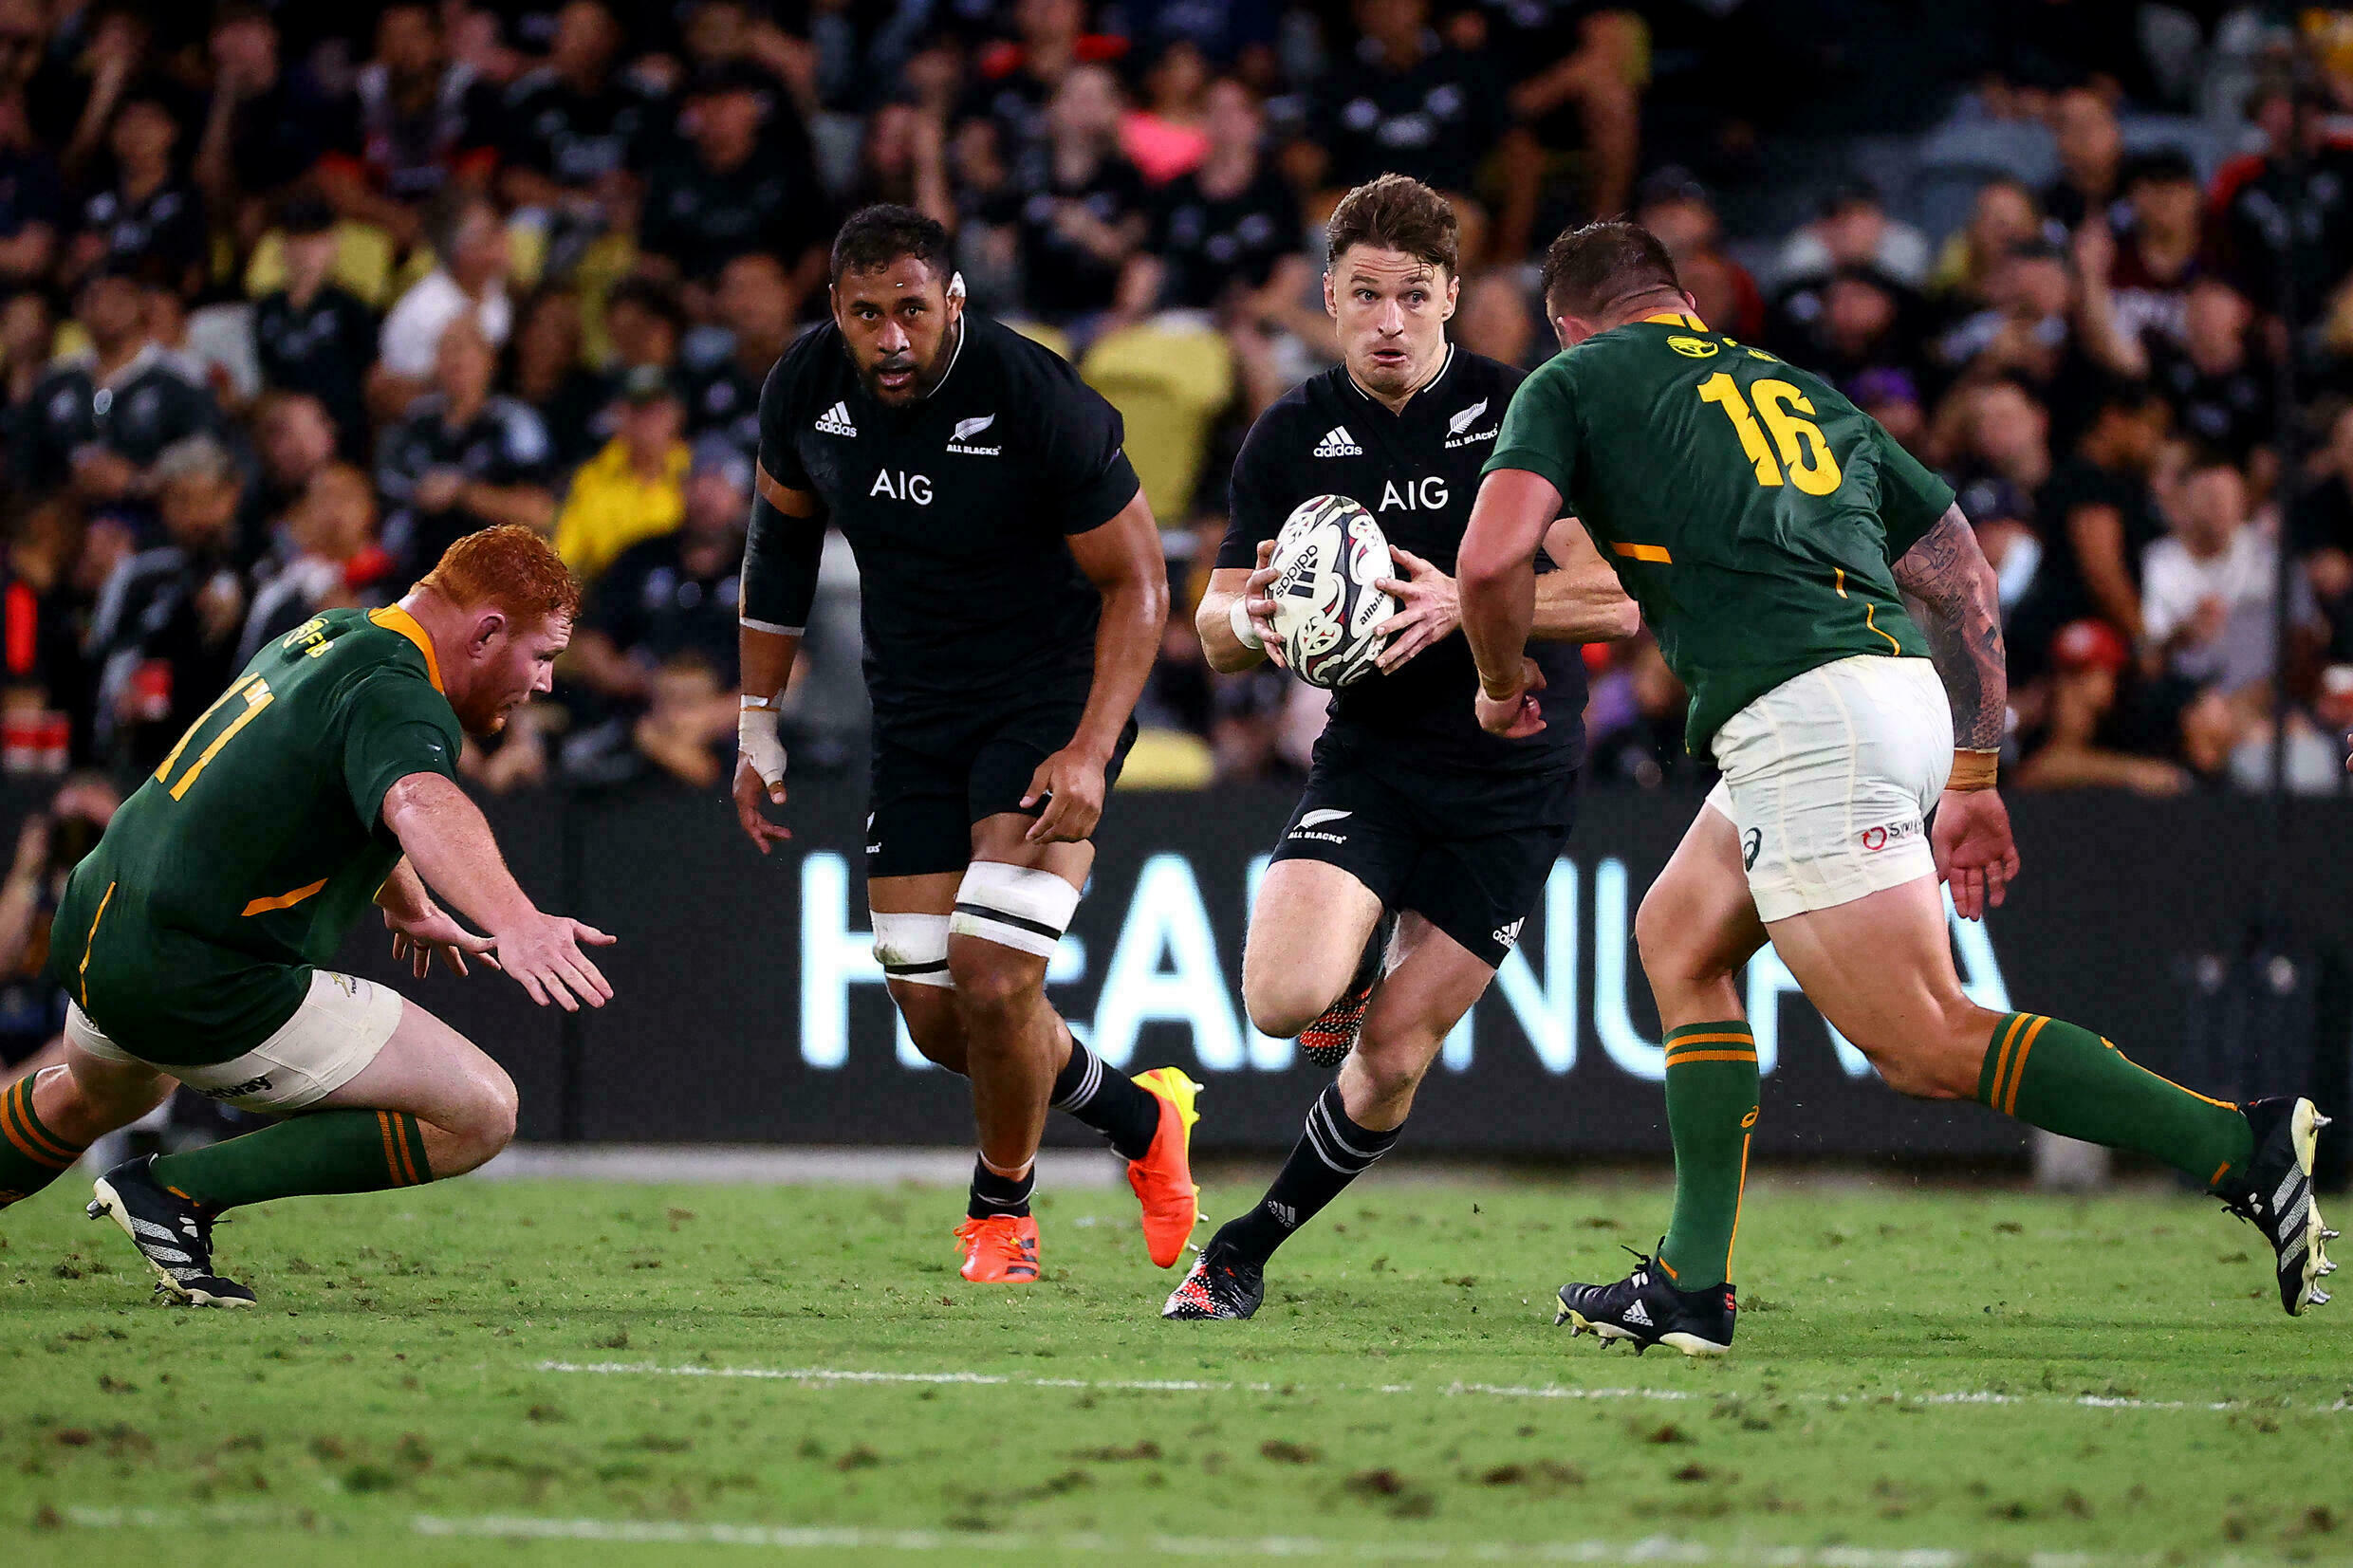 Two South African players prepare to cut off New Zealand's Baden Barrett during a game against South Africa on September 25, 2021 in Downsville, Australia.